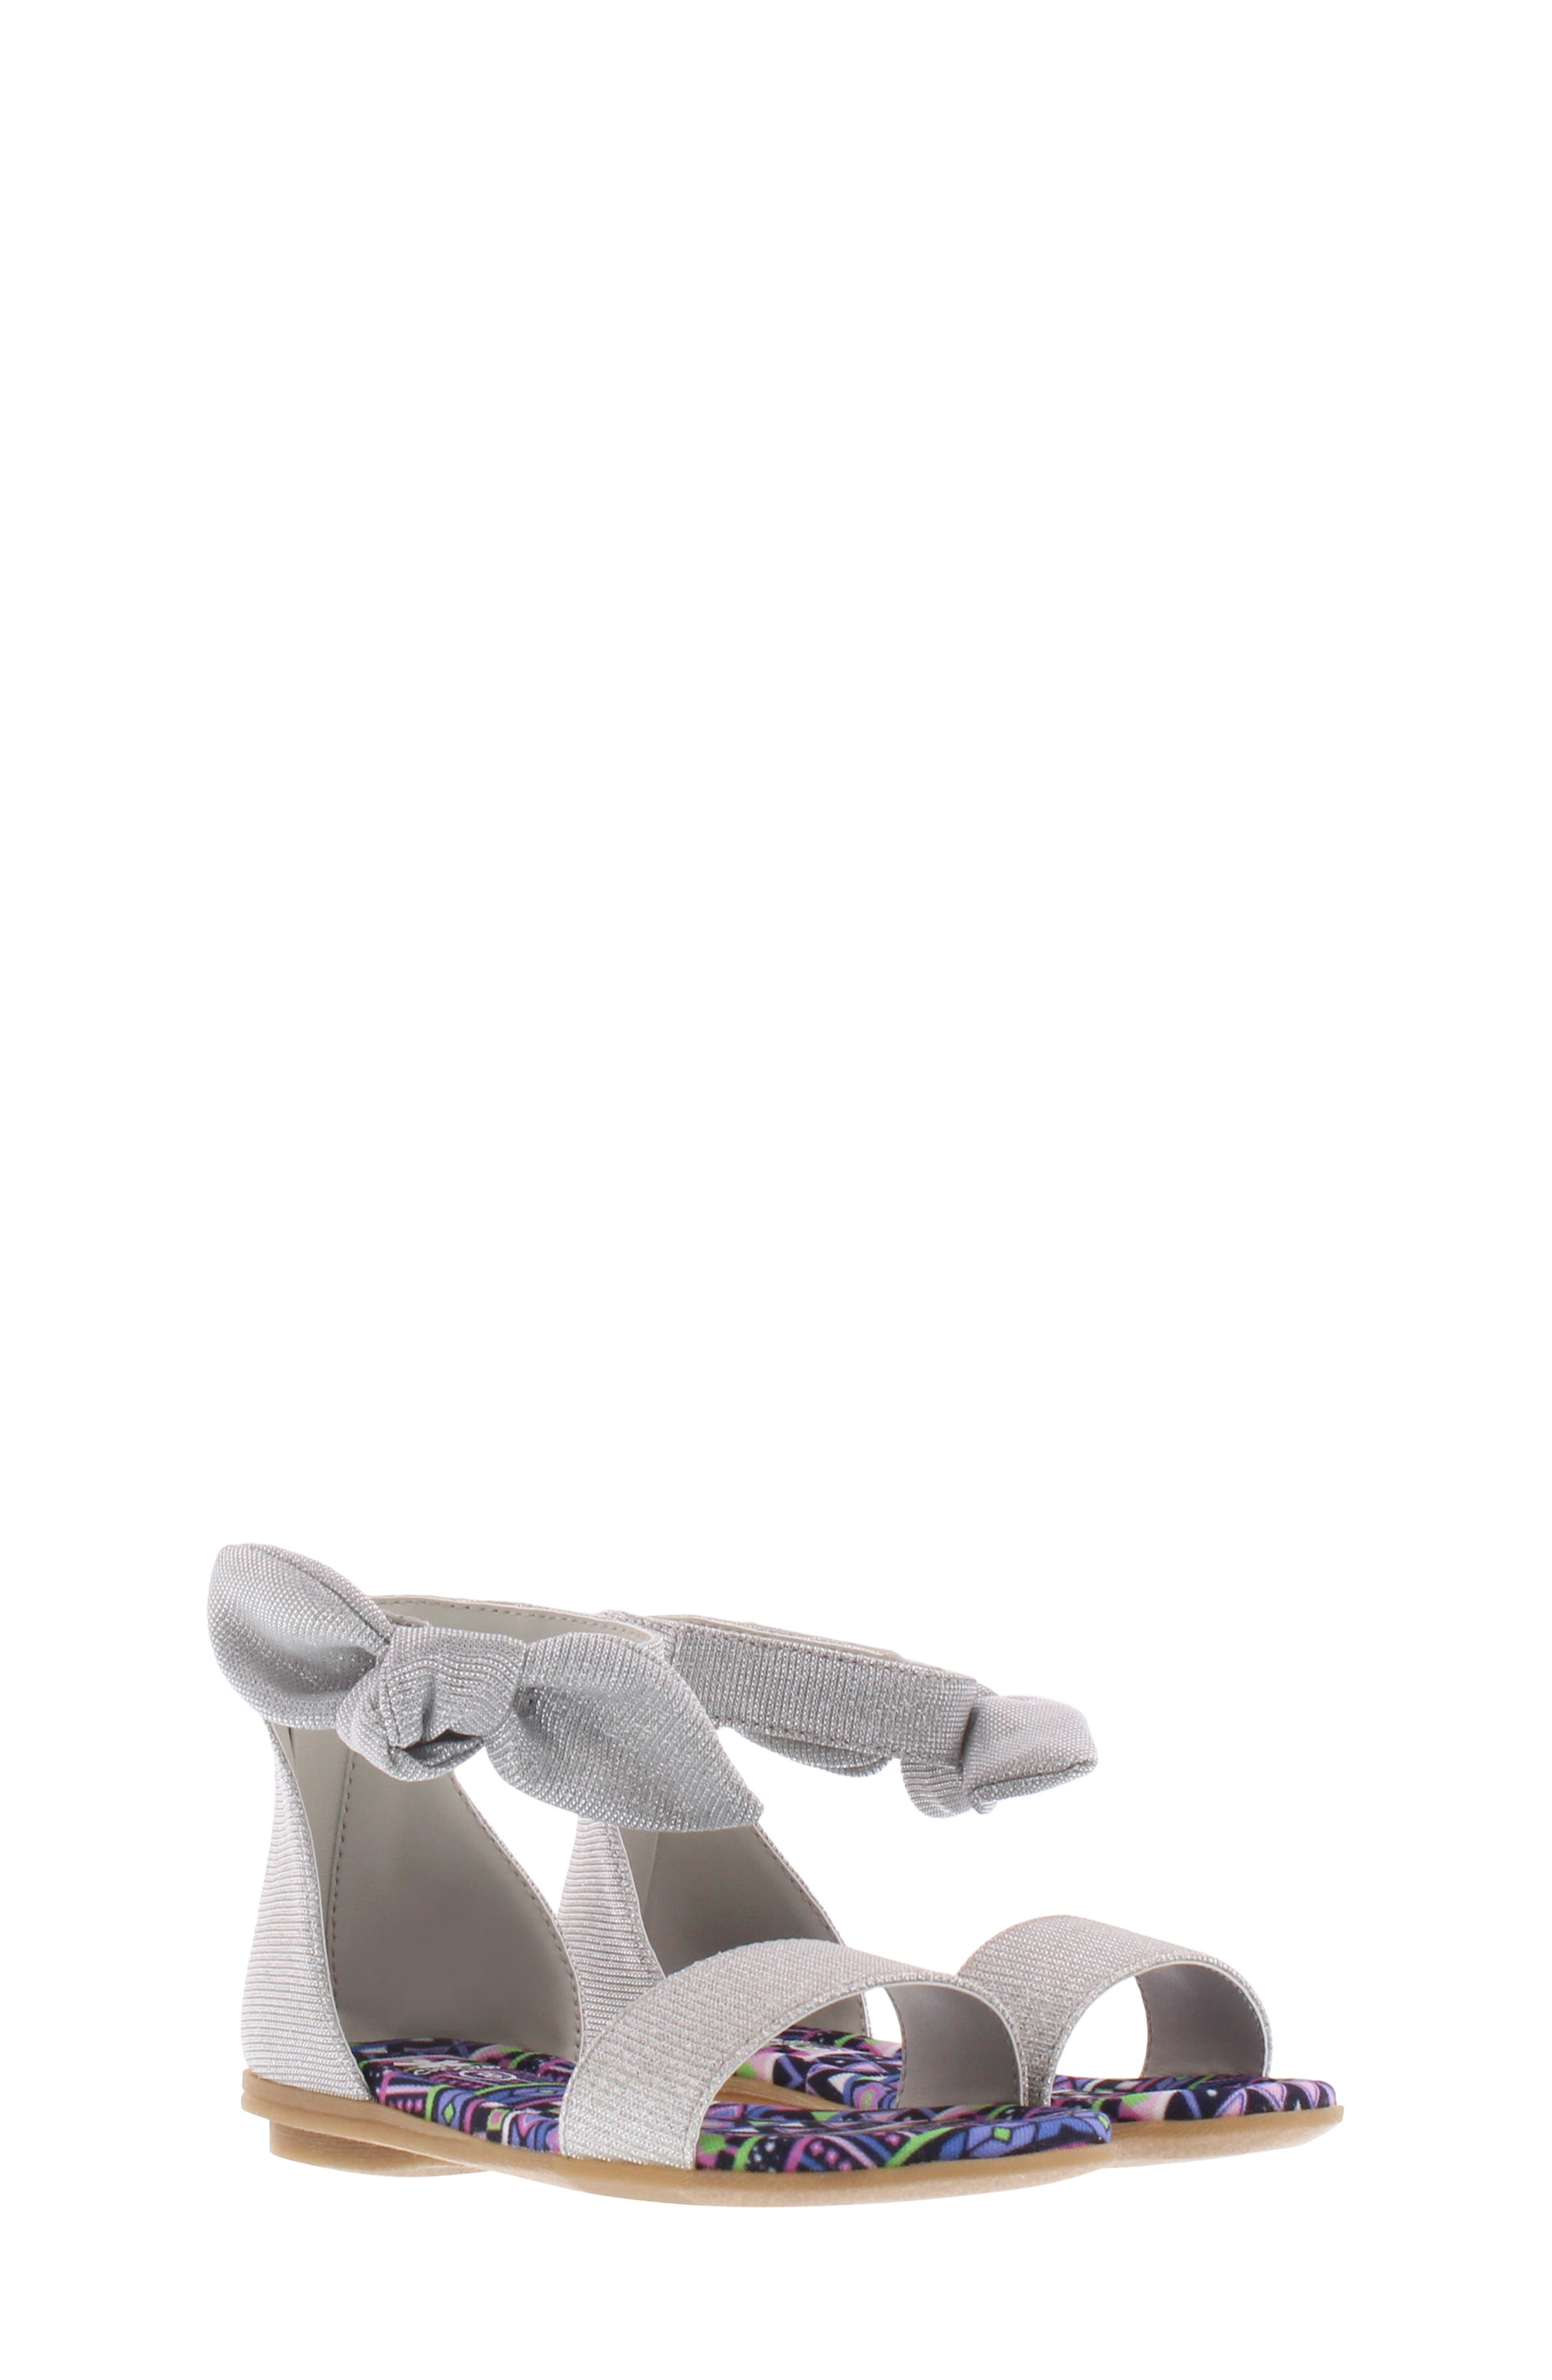 CHOOZE, Bright Daisy Sandal, Main thumbnail 1, color, SILVER